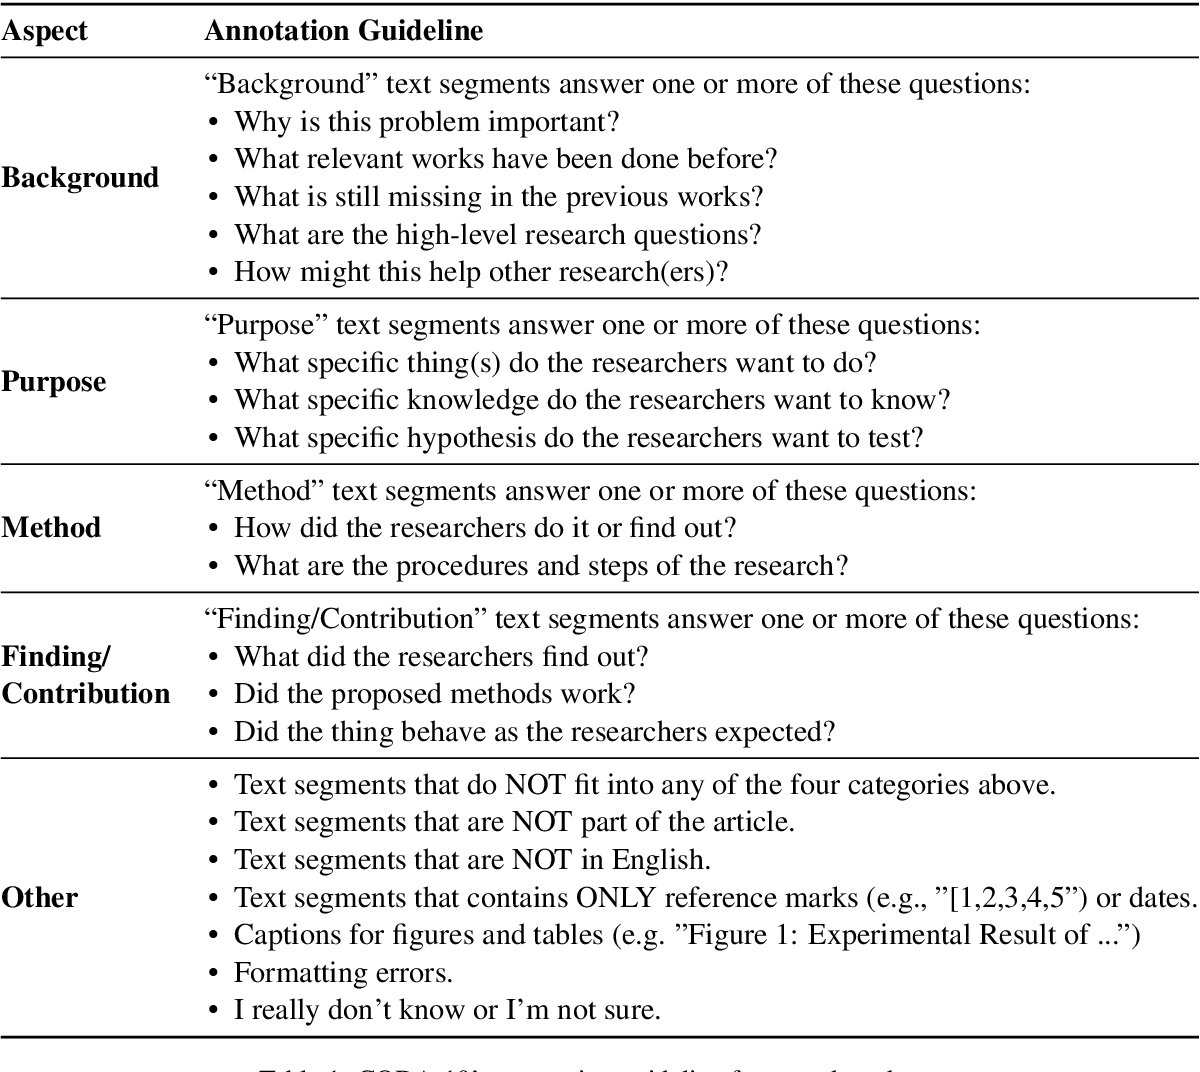 Figure 2 for CODA-19: Reliably Annotating Research Aspects on 10,000+ CORD-19 Abstracts Using a Non-Expert Crowd